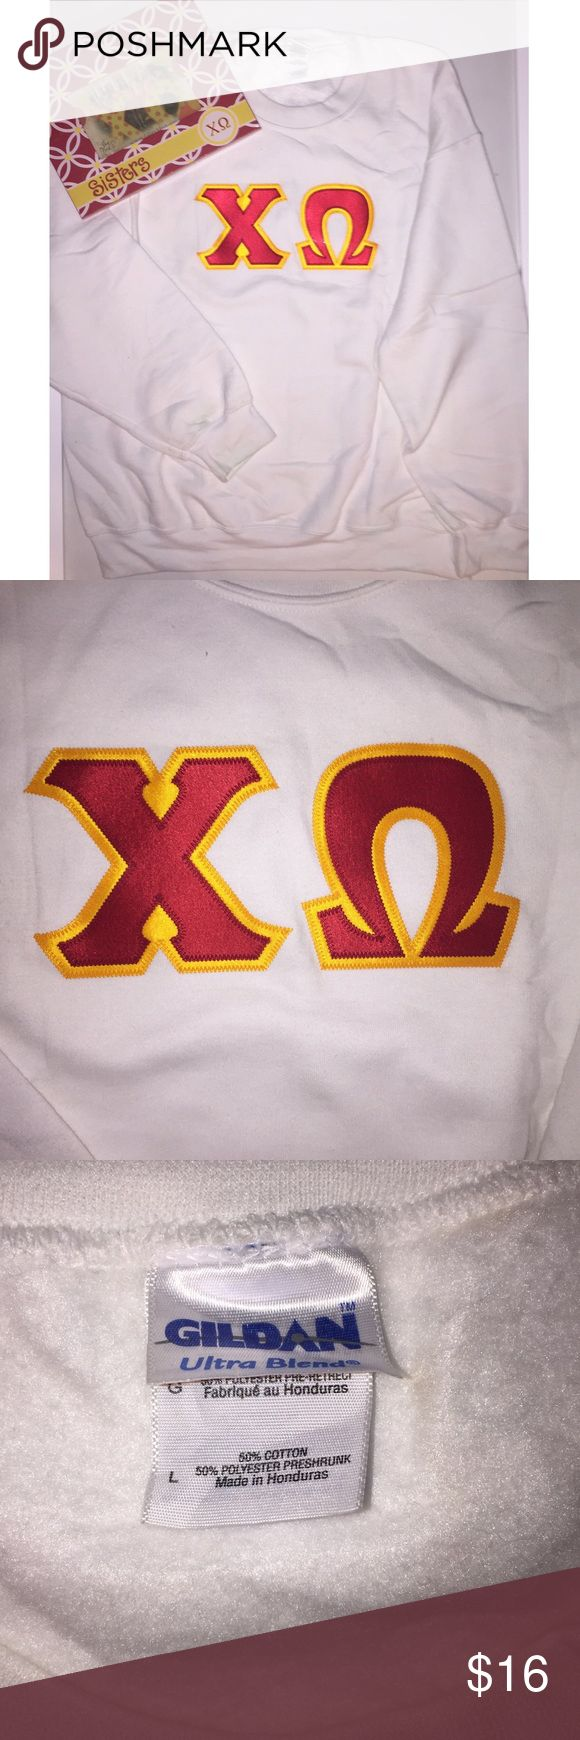 Chi Omega sorority sweatshirt ΧΩ letters embroidered in sorority colors. Super soft and only worn a couple of times so no flaws! 50% cotton, 50% polyester material. Gildan Tops Sweatshirts & Hoodies